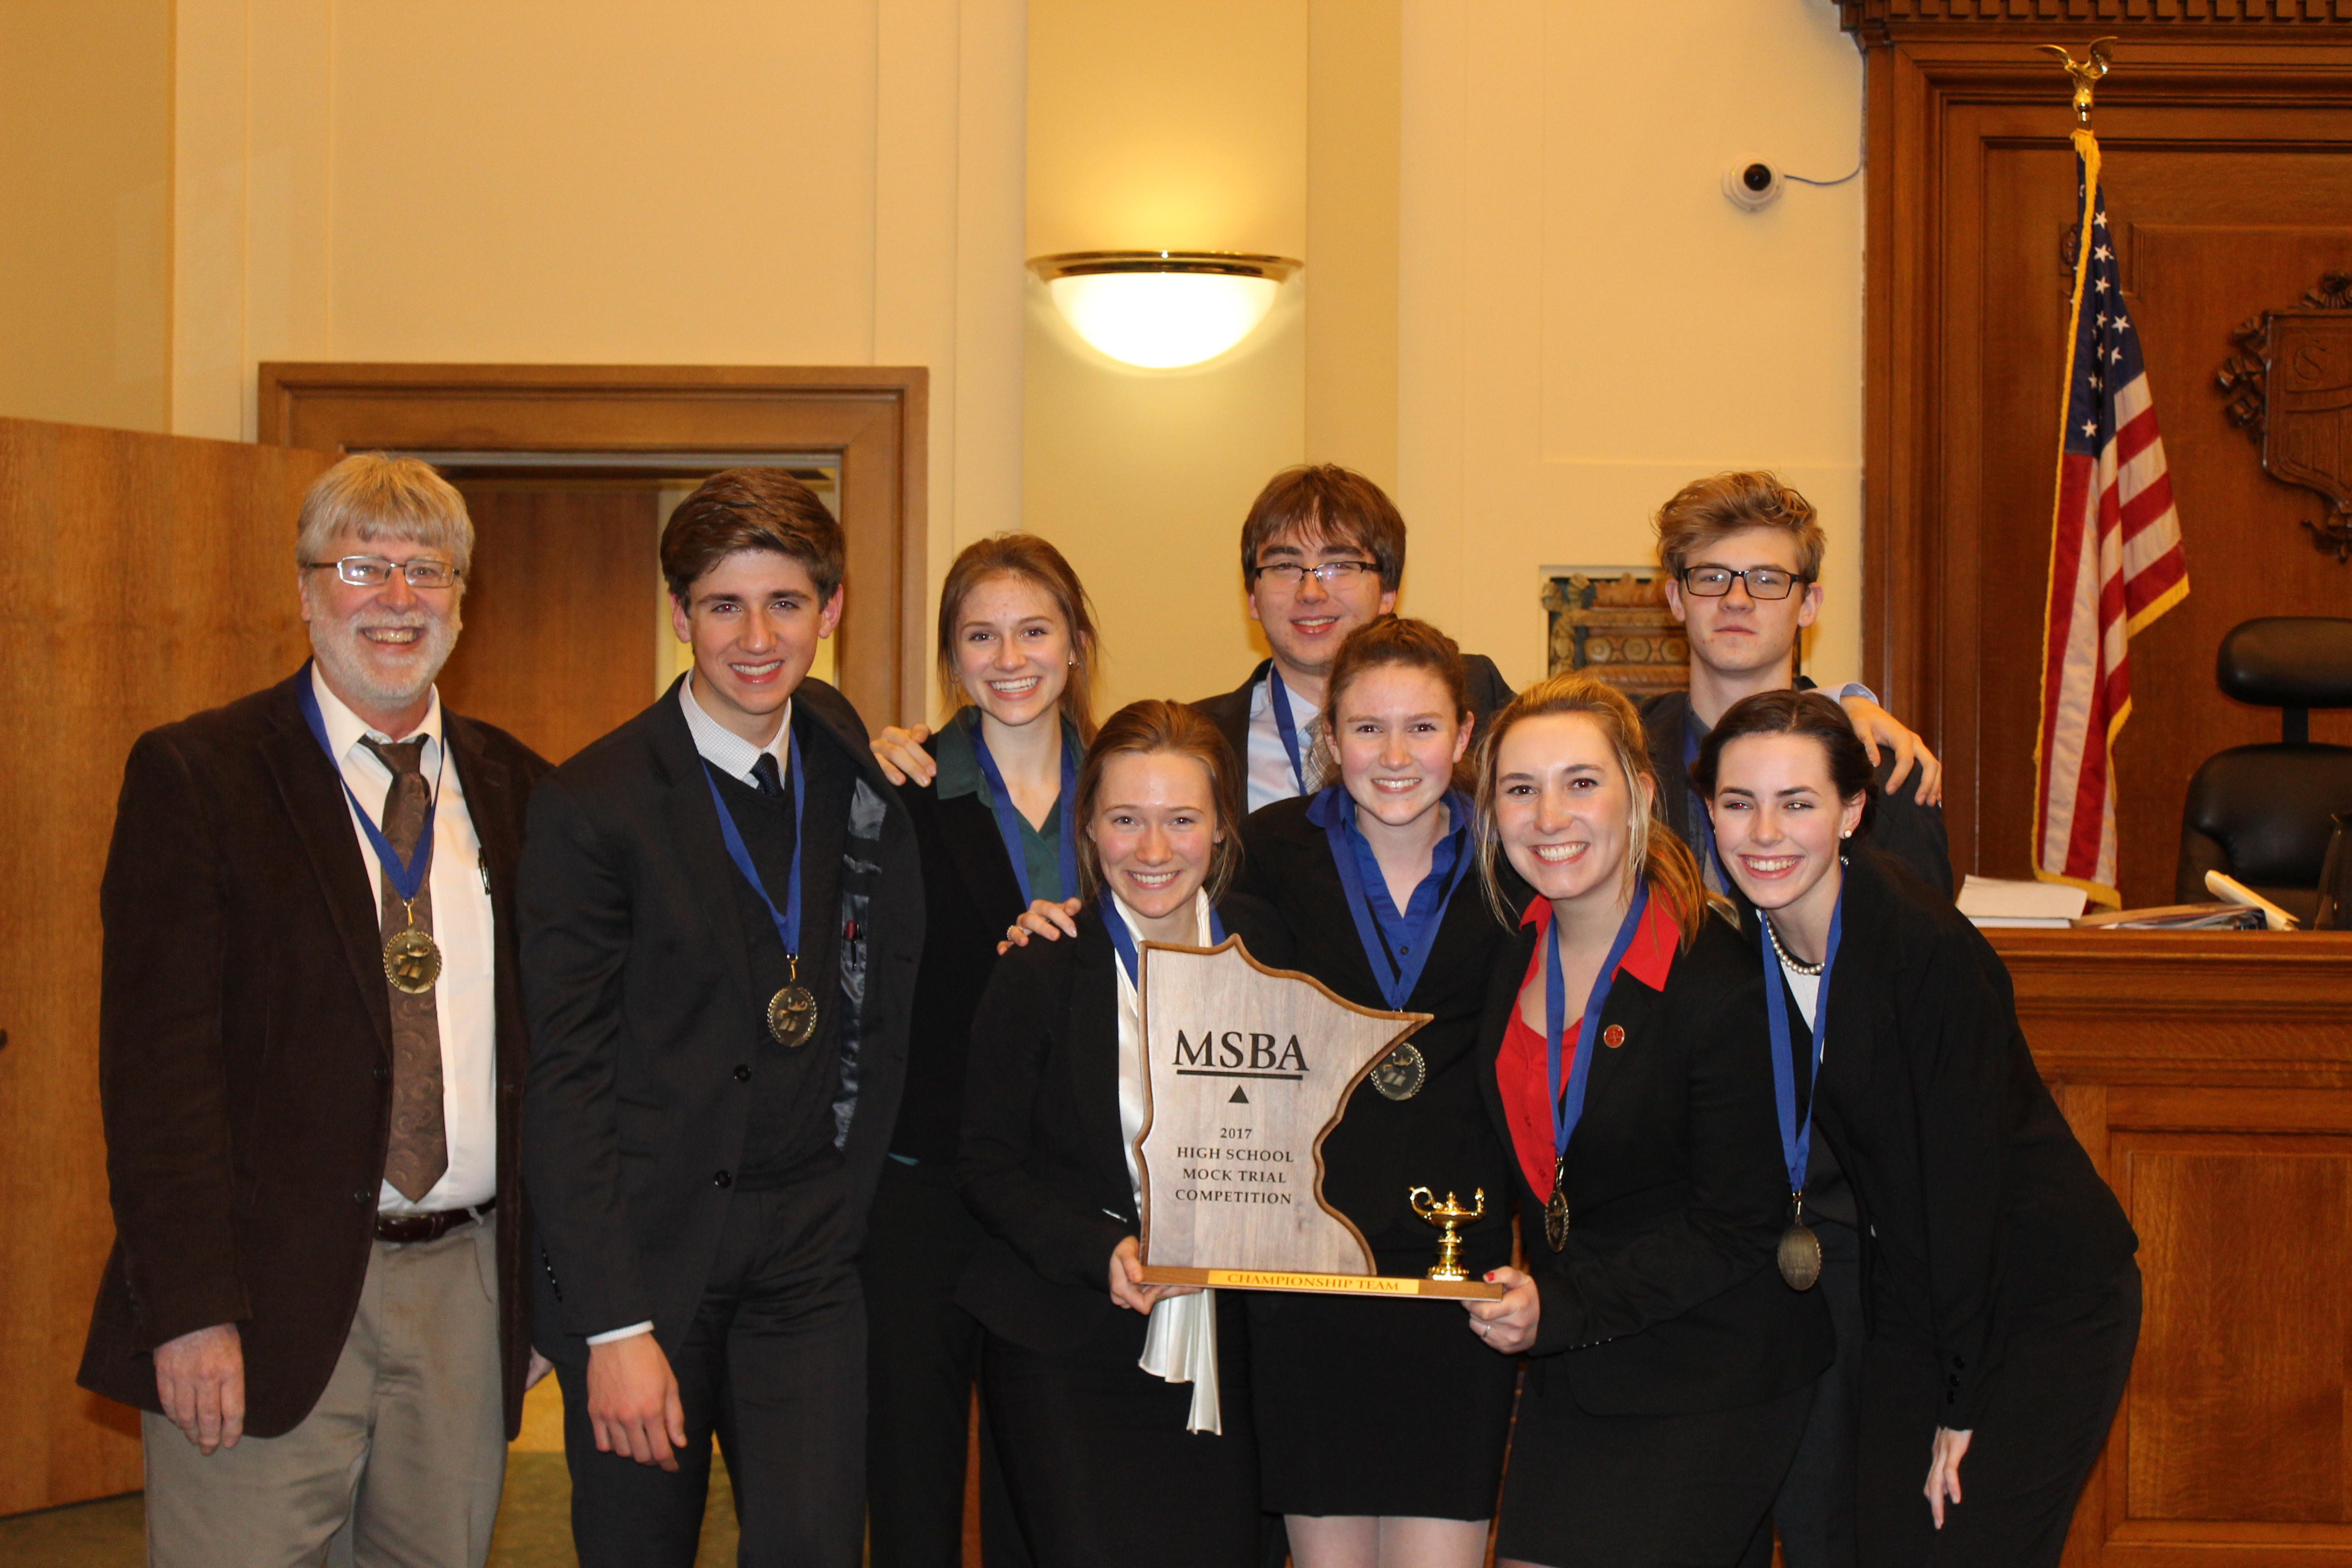 msba mock trial the minnesota high school mock trial program is an exciting law related education program that introduces students to the american legal system and provides